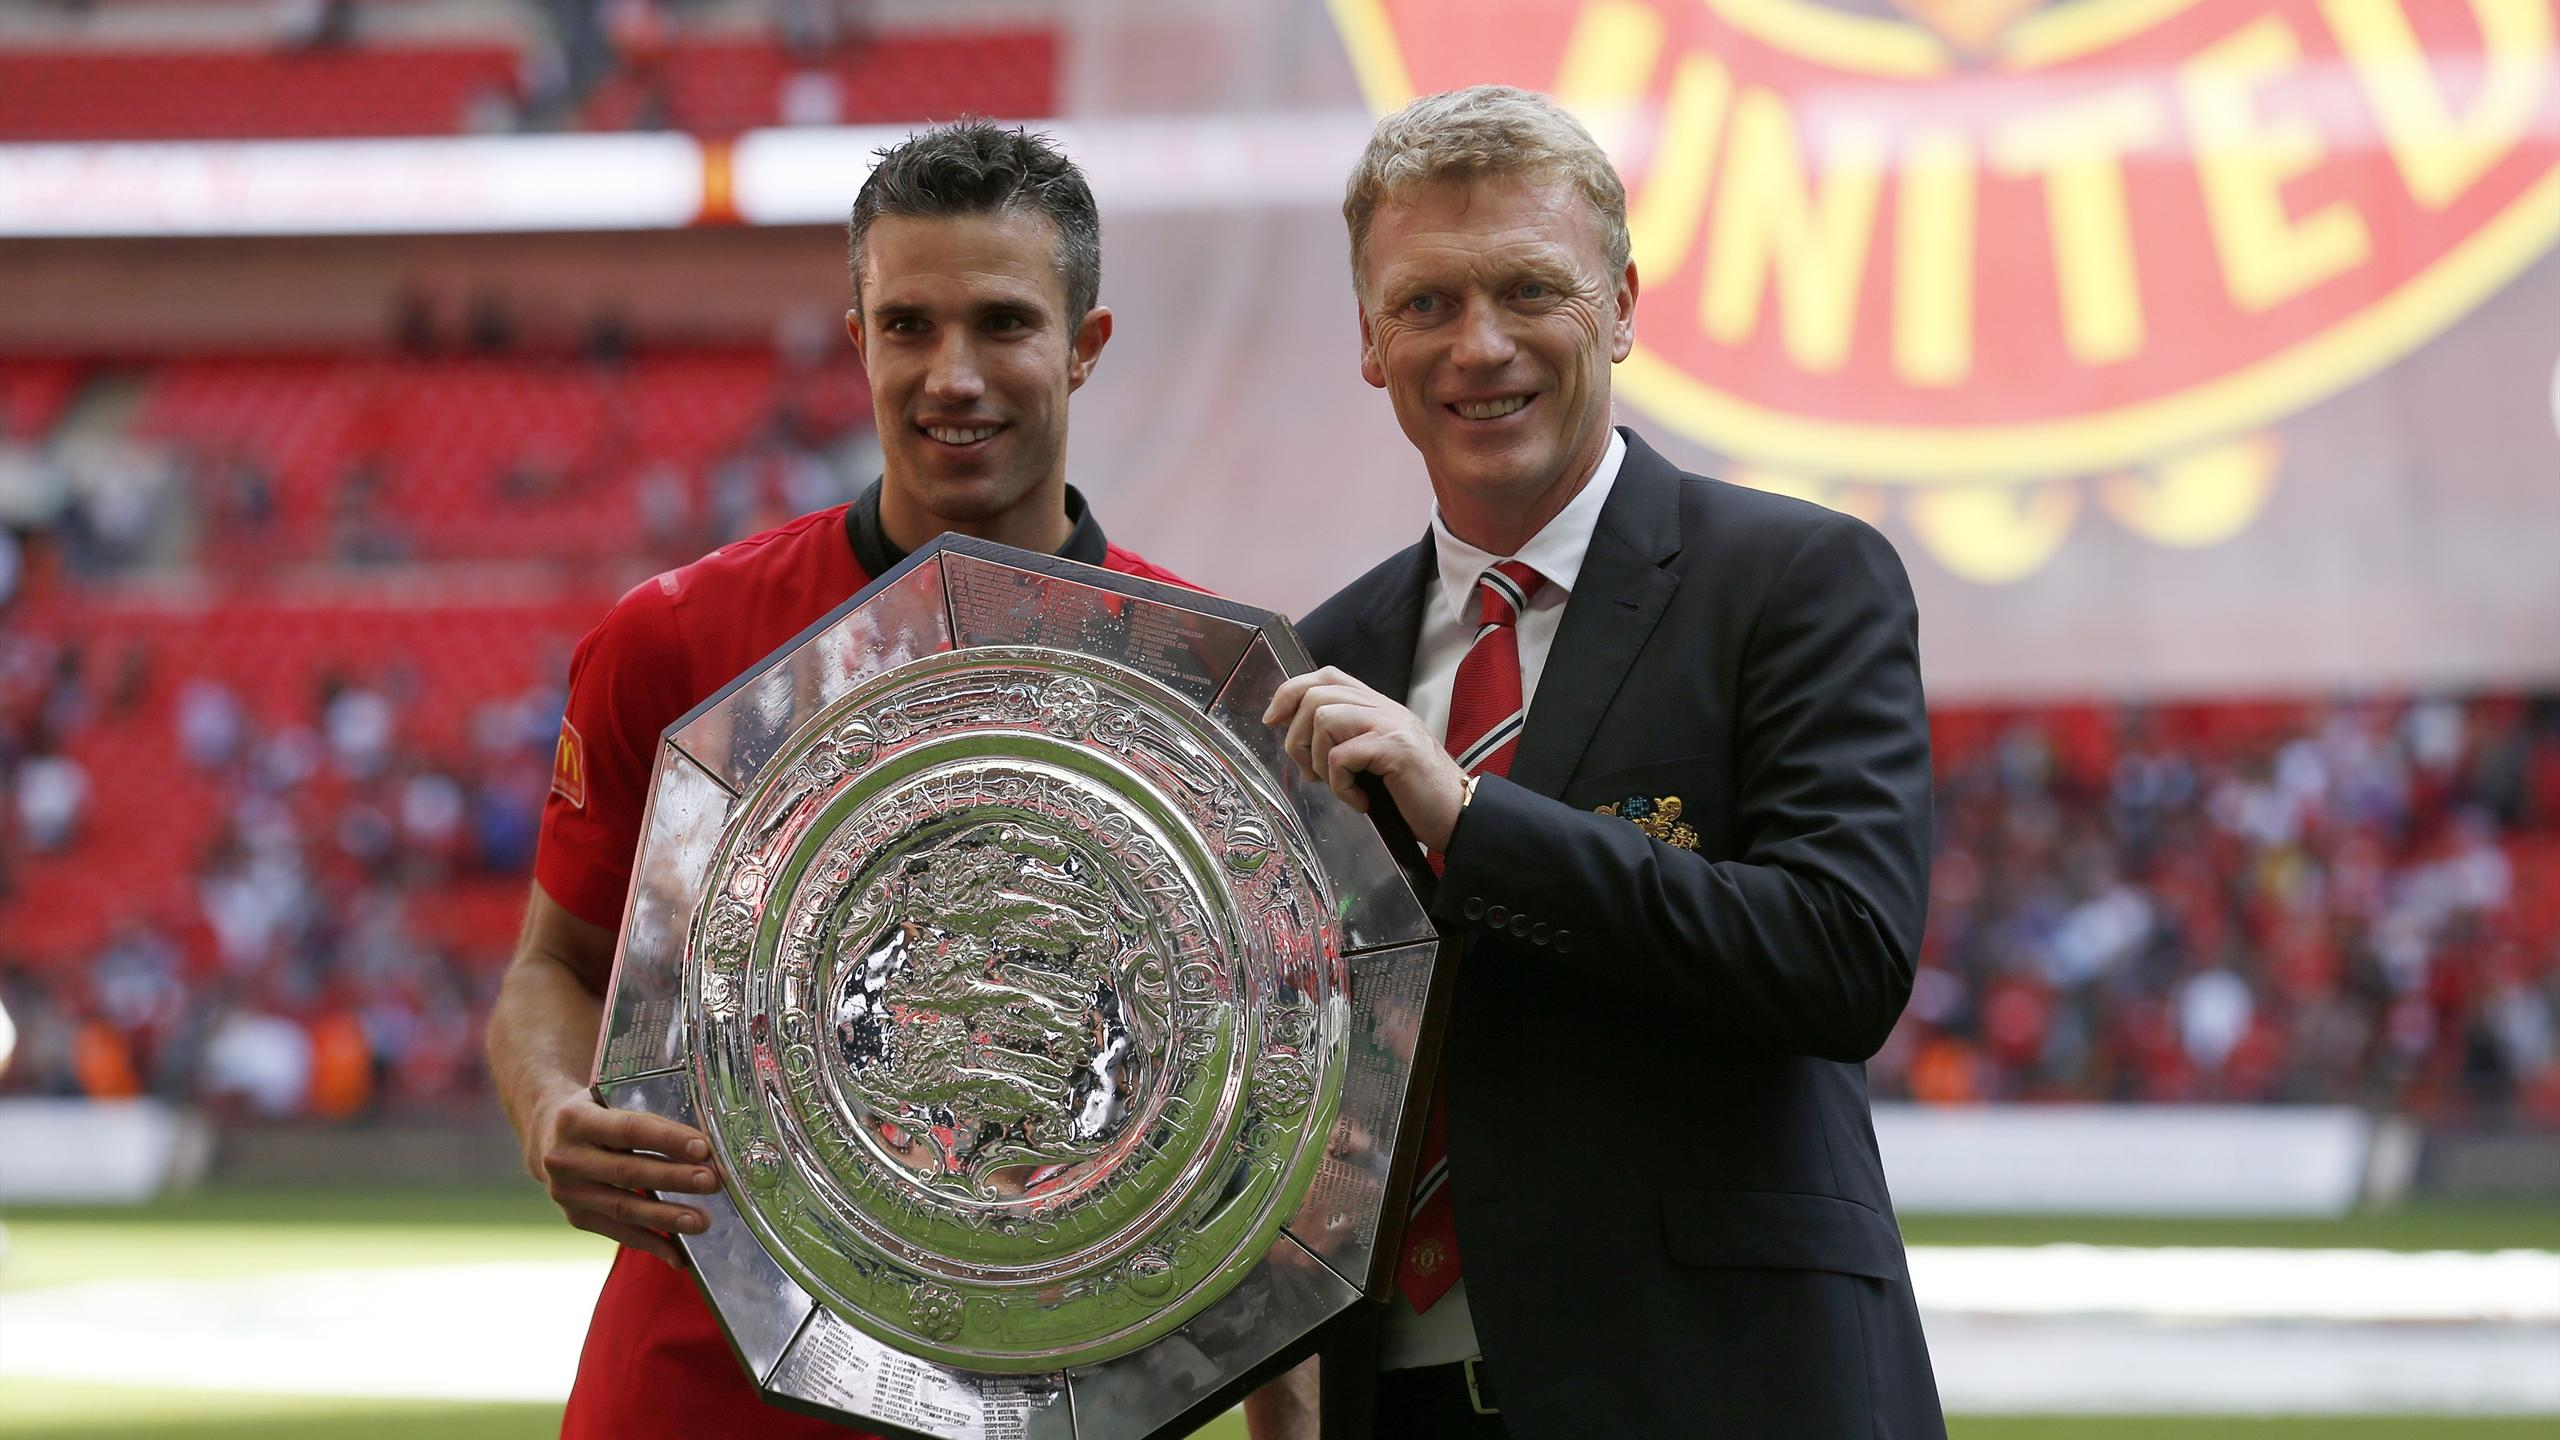 Manchester United's Manager David Moyes holds the trophy with goal scorer Robin van persie